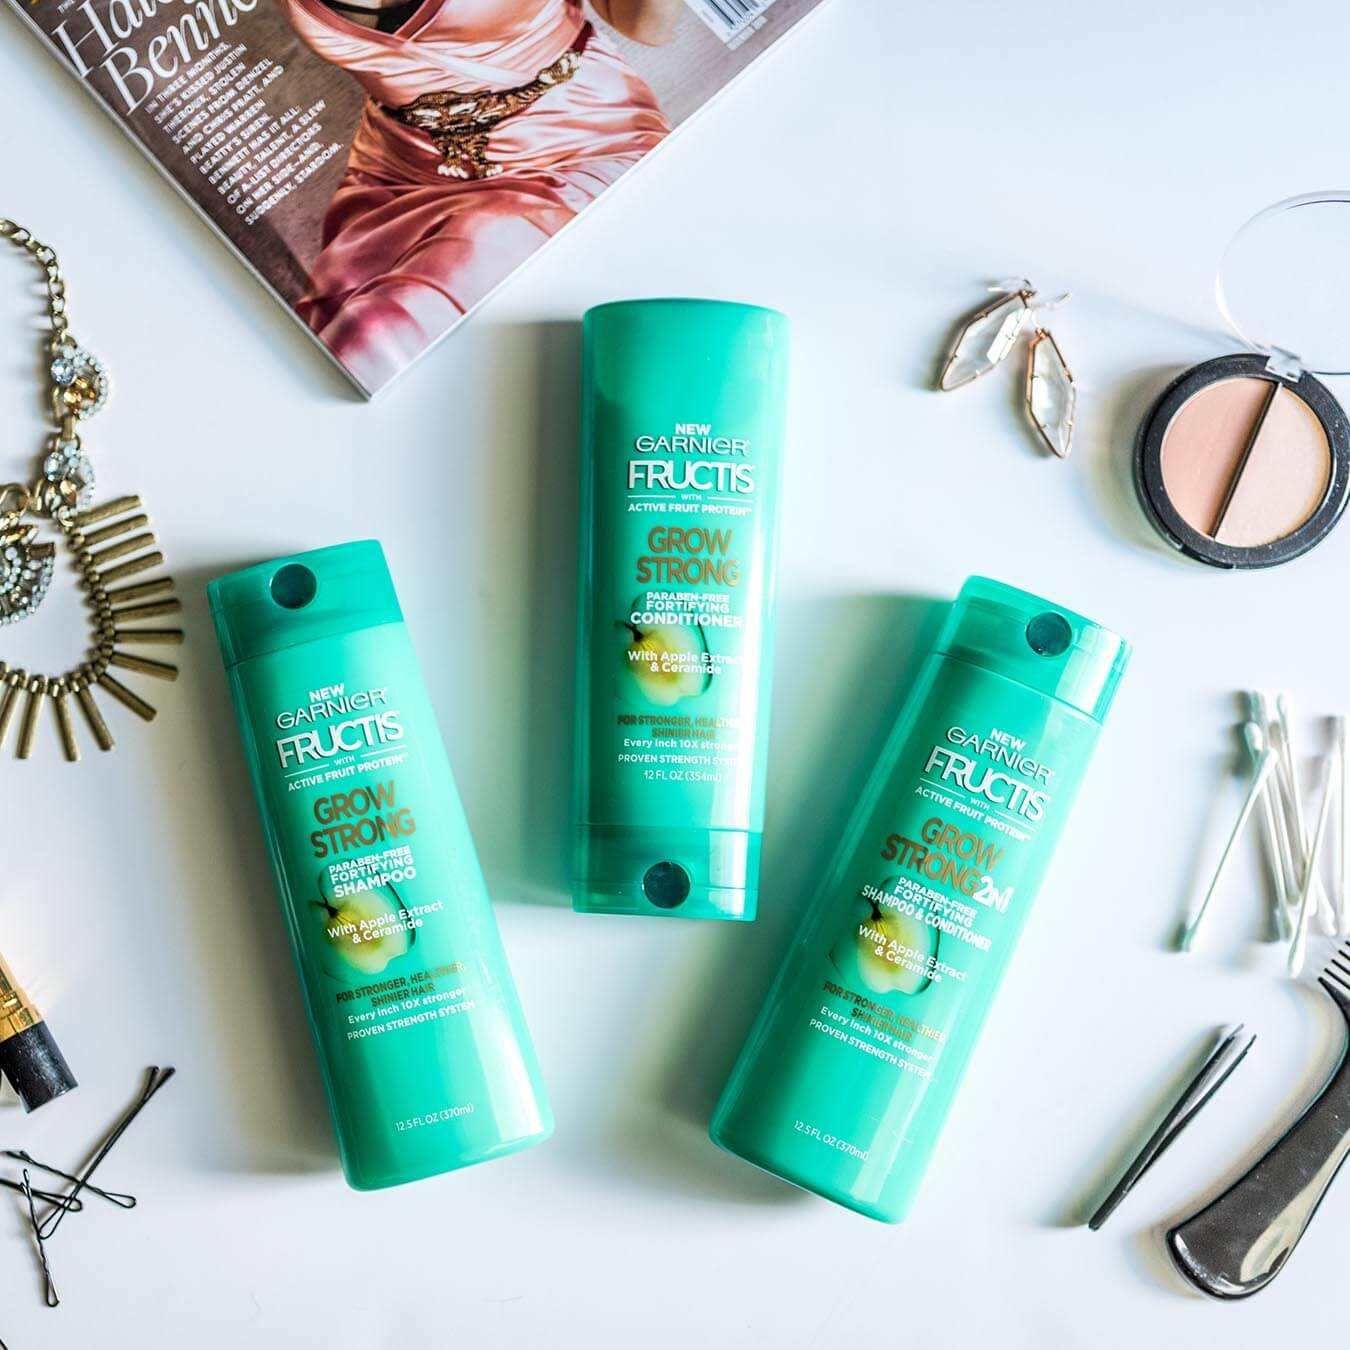 Garnier Fructis Grow Strong Shampoo, Fructis Grow Strong Conditioner, and Fructis Grow Strong 2-in-1 on a blueish-white background next to gold earrings and necklace, bobby pins, tweezers, q-tips, a comb, and two shades of blush.